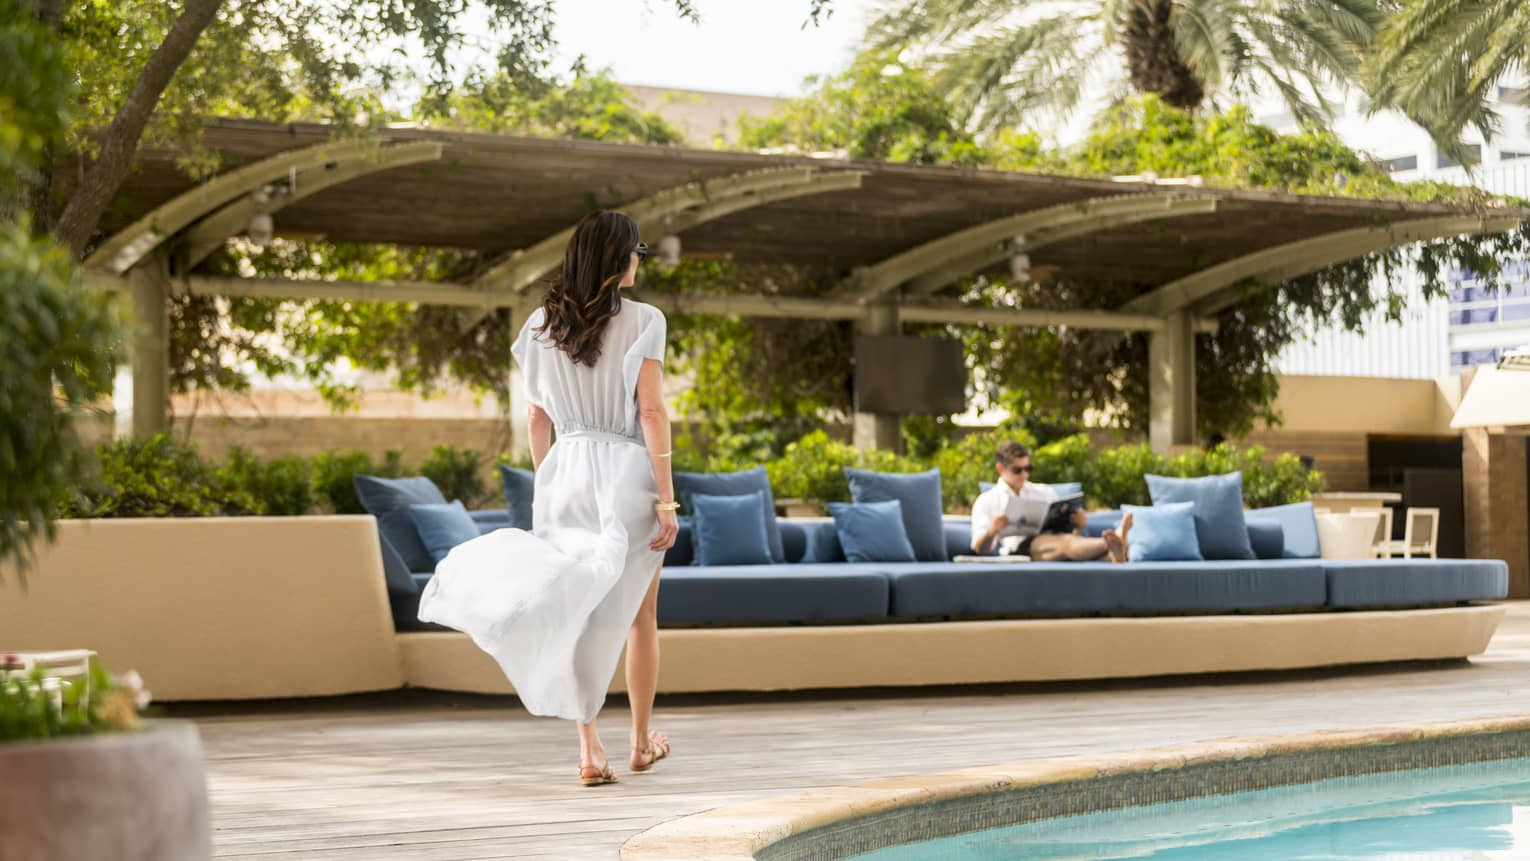 Woman in white flowing dress walks by swimming pool to blue banquette where man is reading magazine